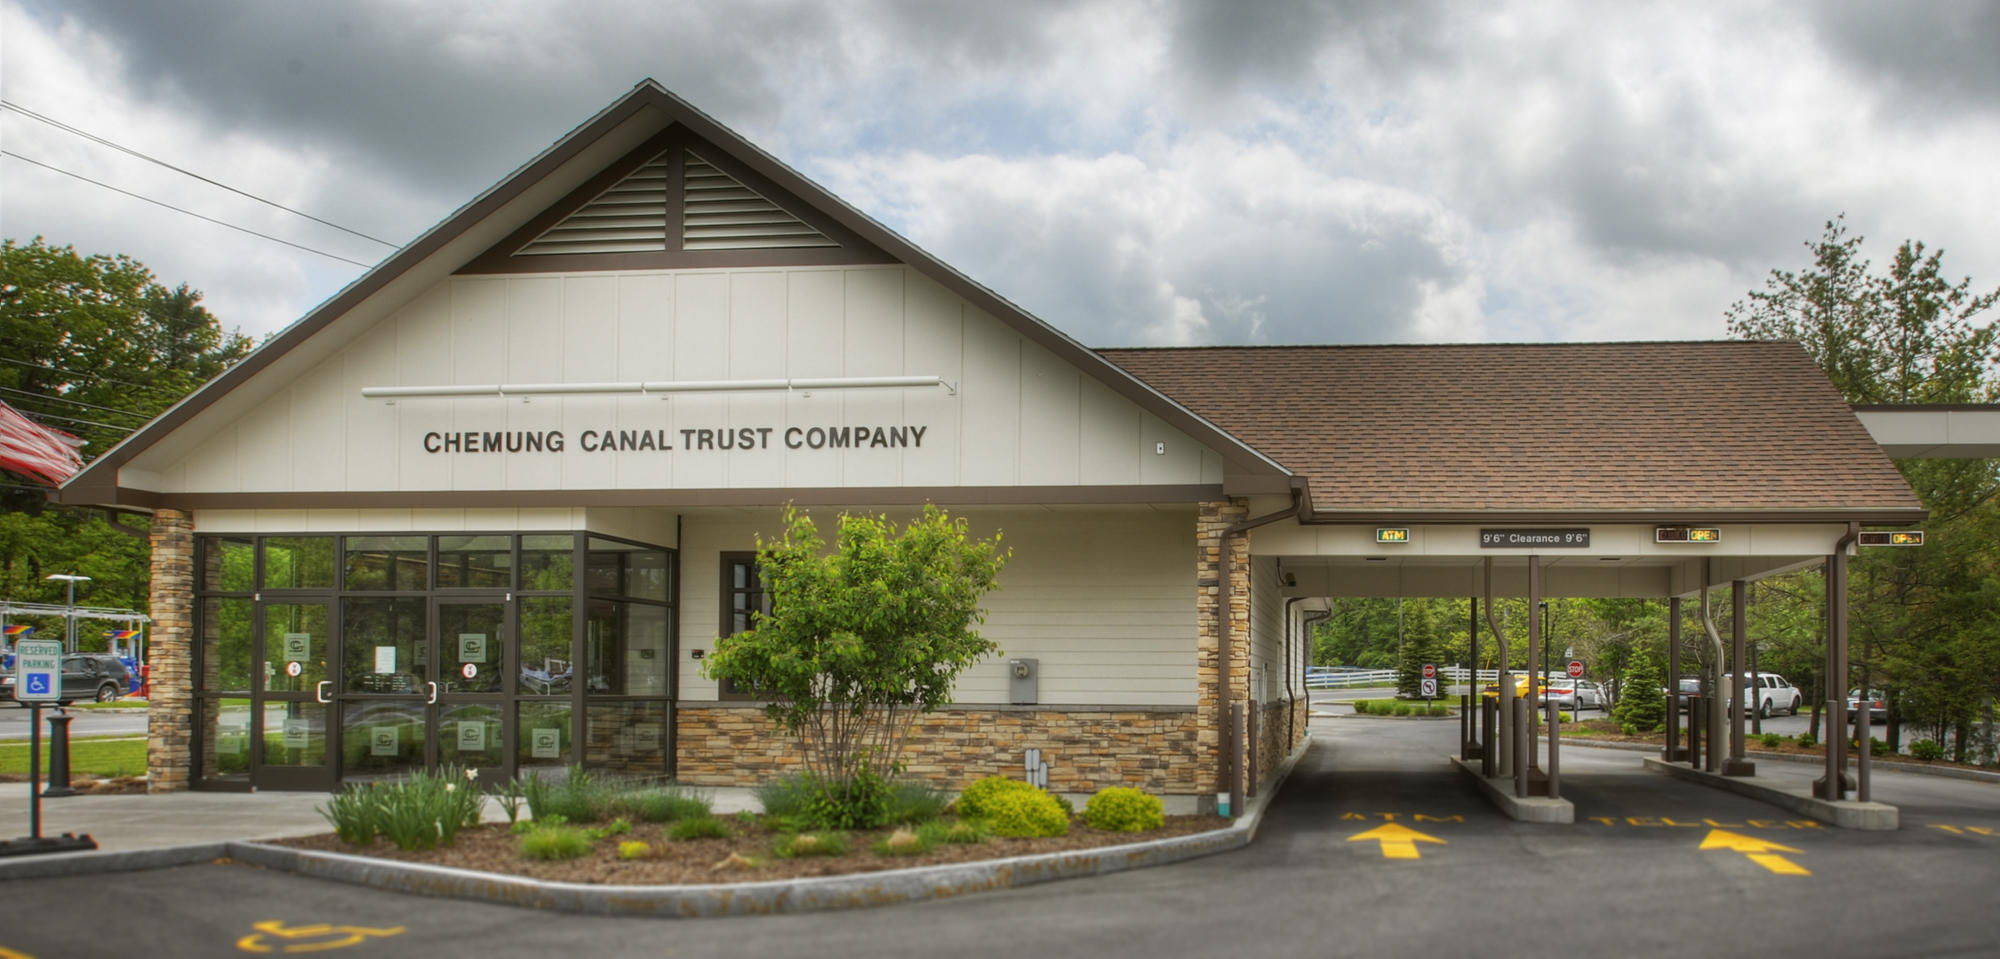 Chemung Canal Trust Company image 0